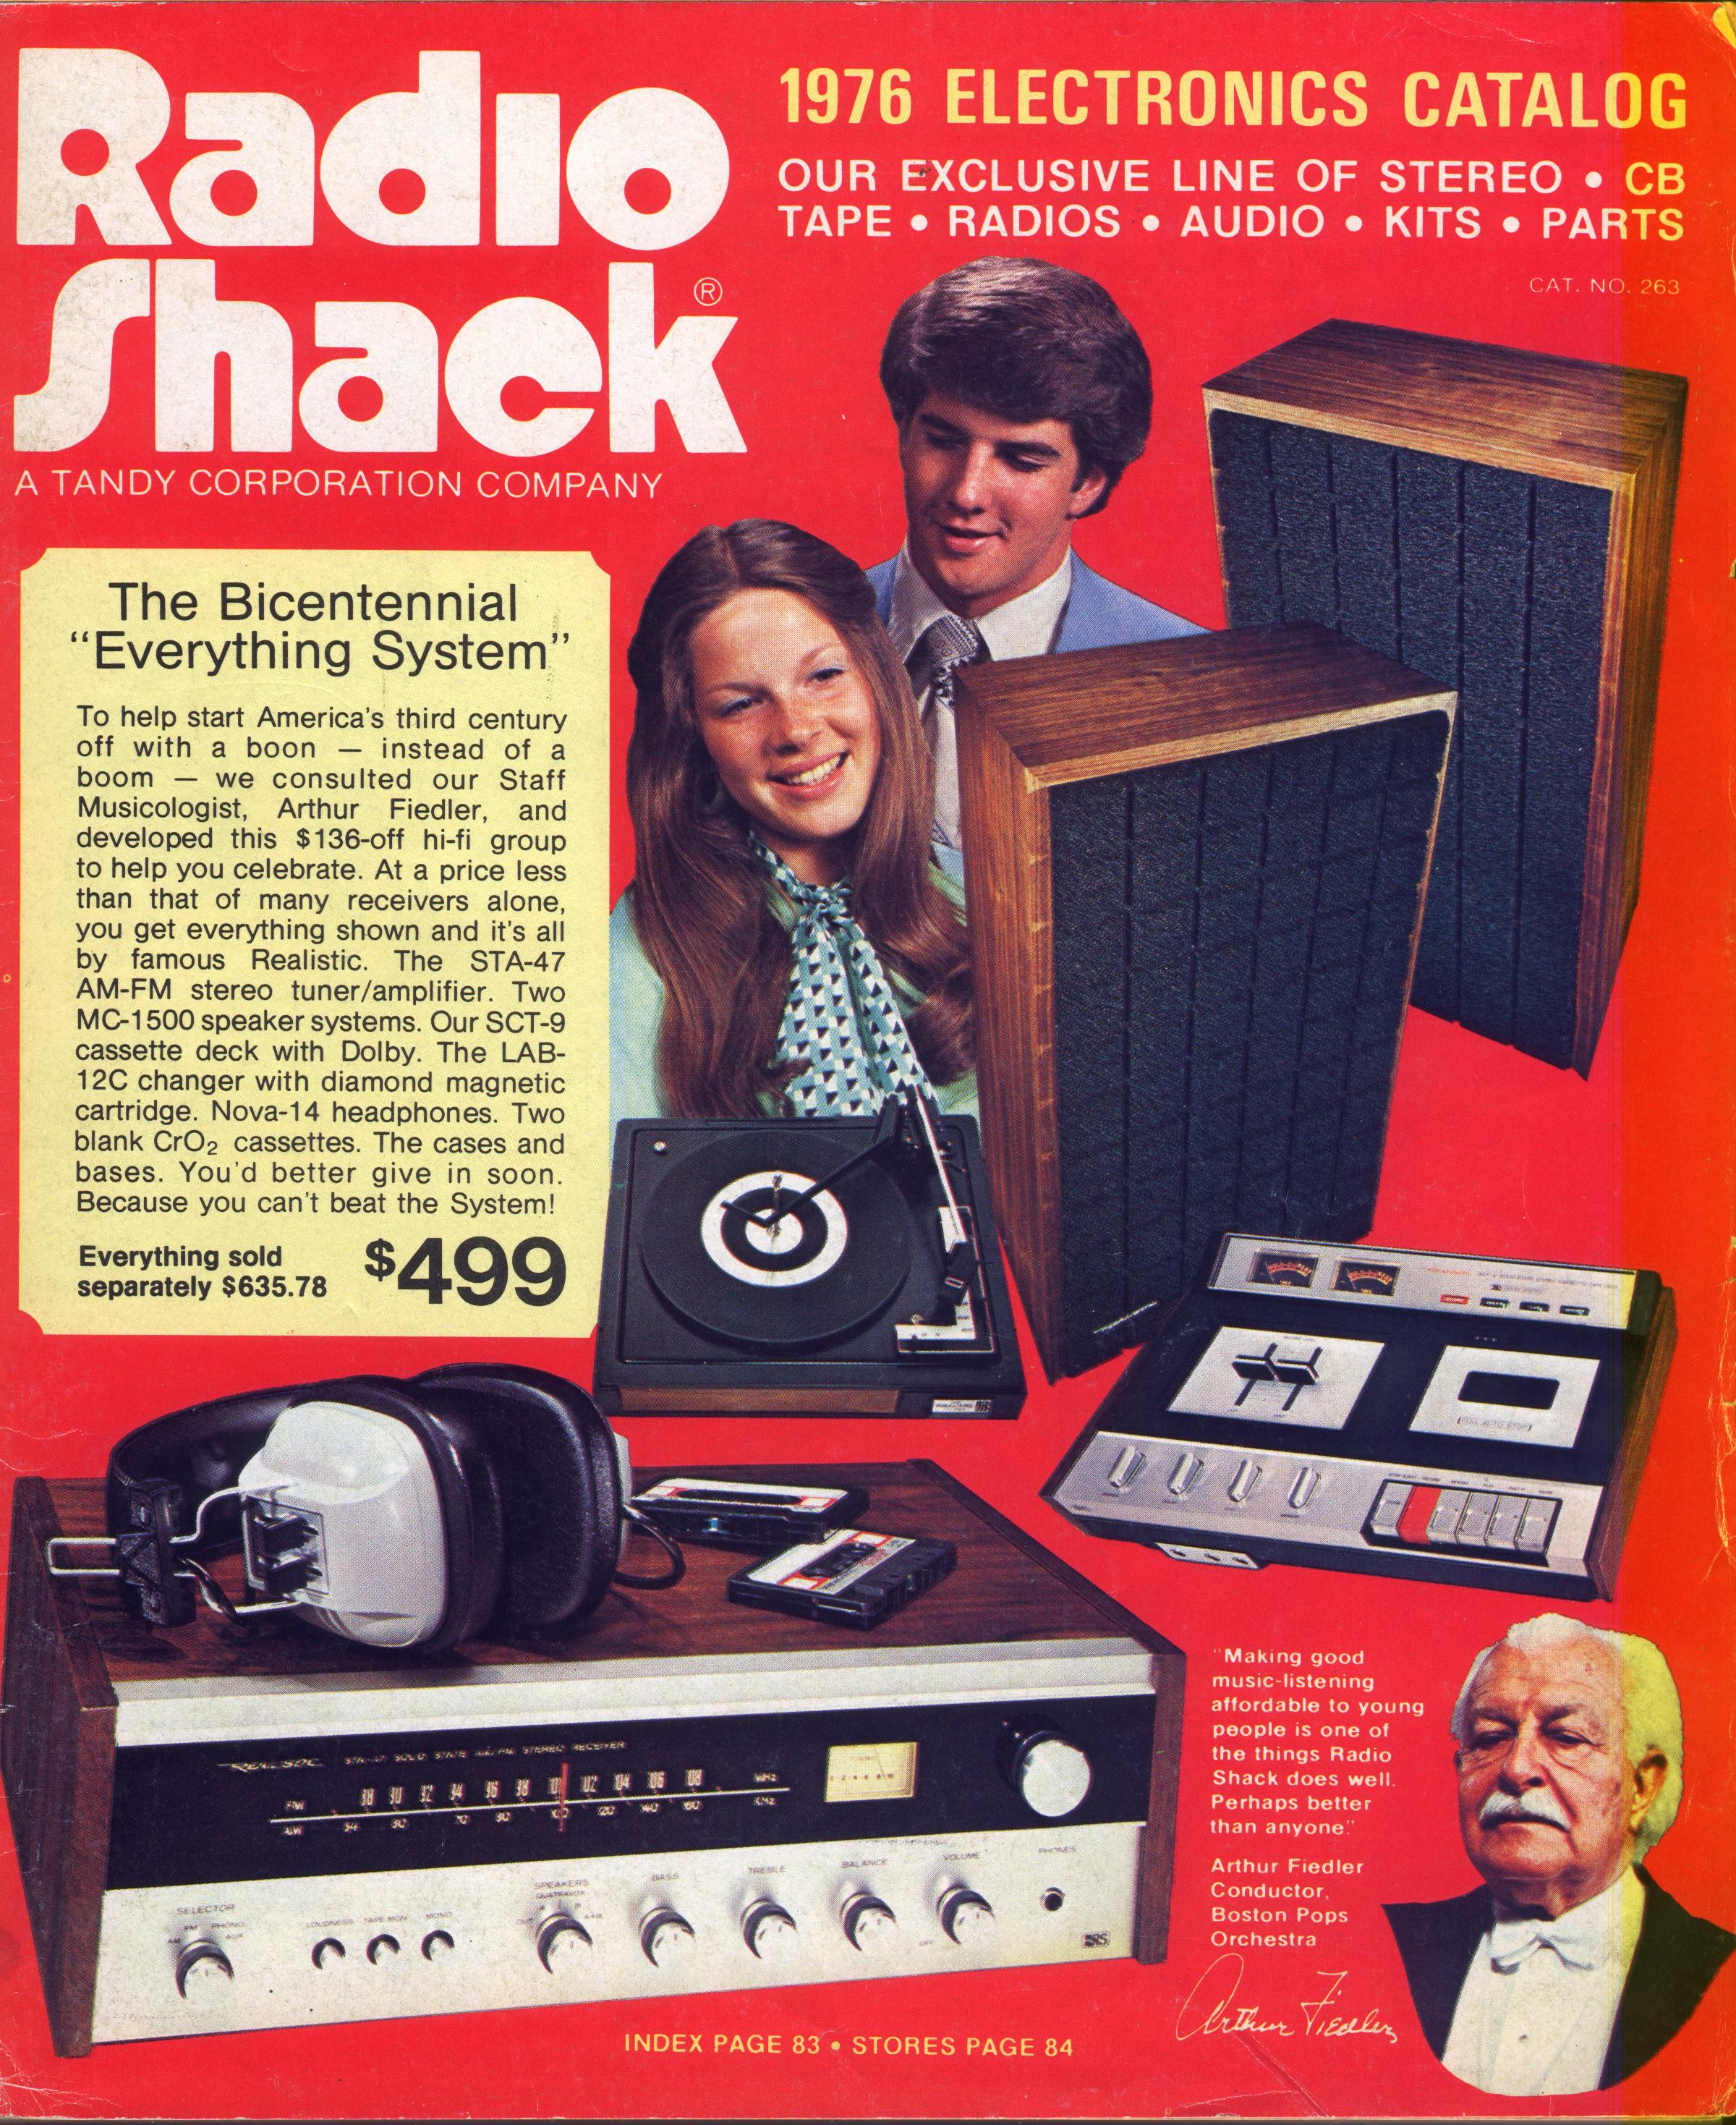 Radio Shack 1976 front cover